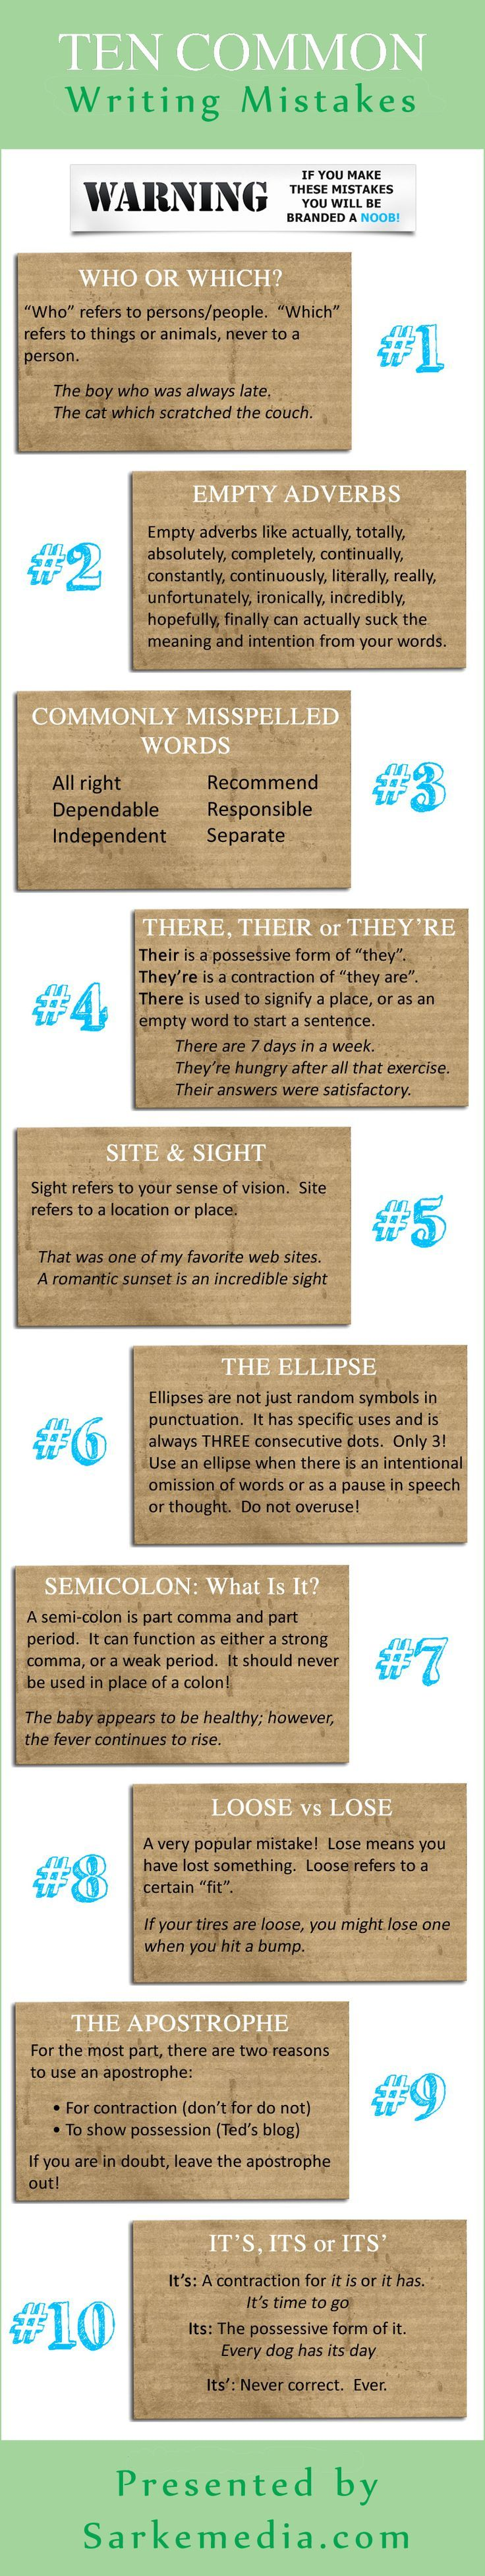 10 Writing Mistakes infographic 2238 best Added